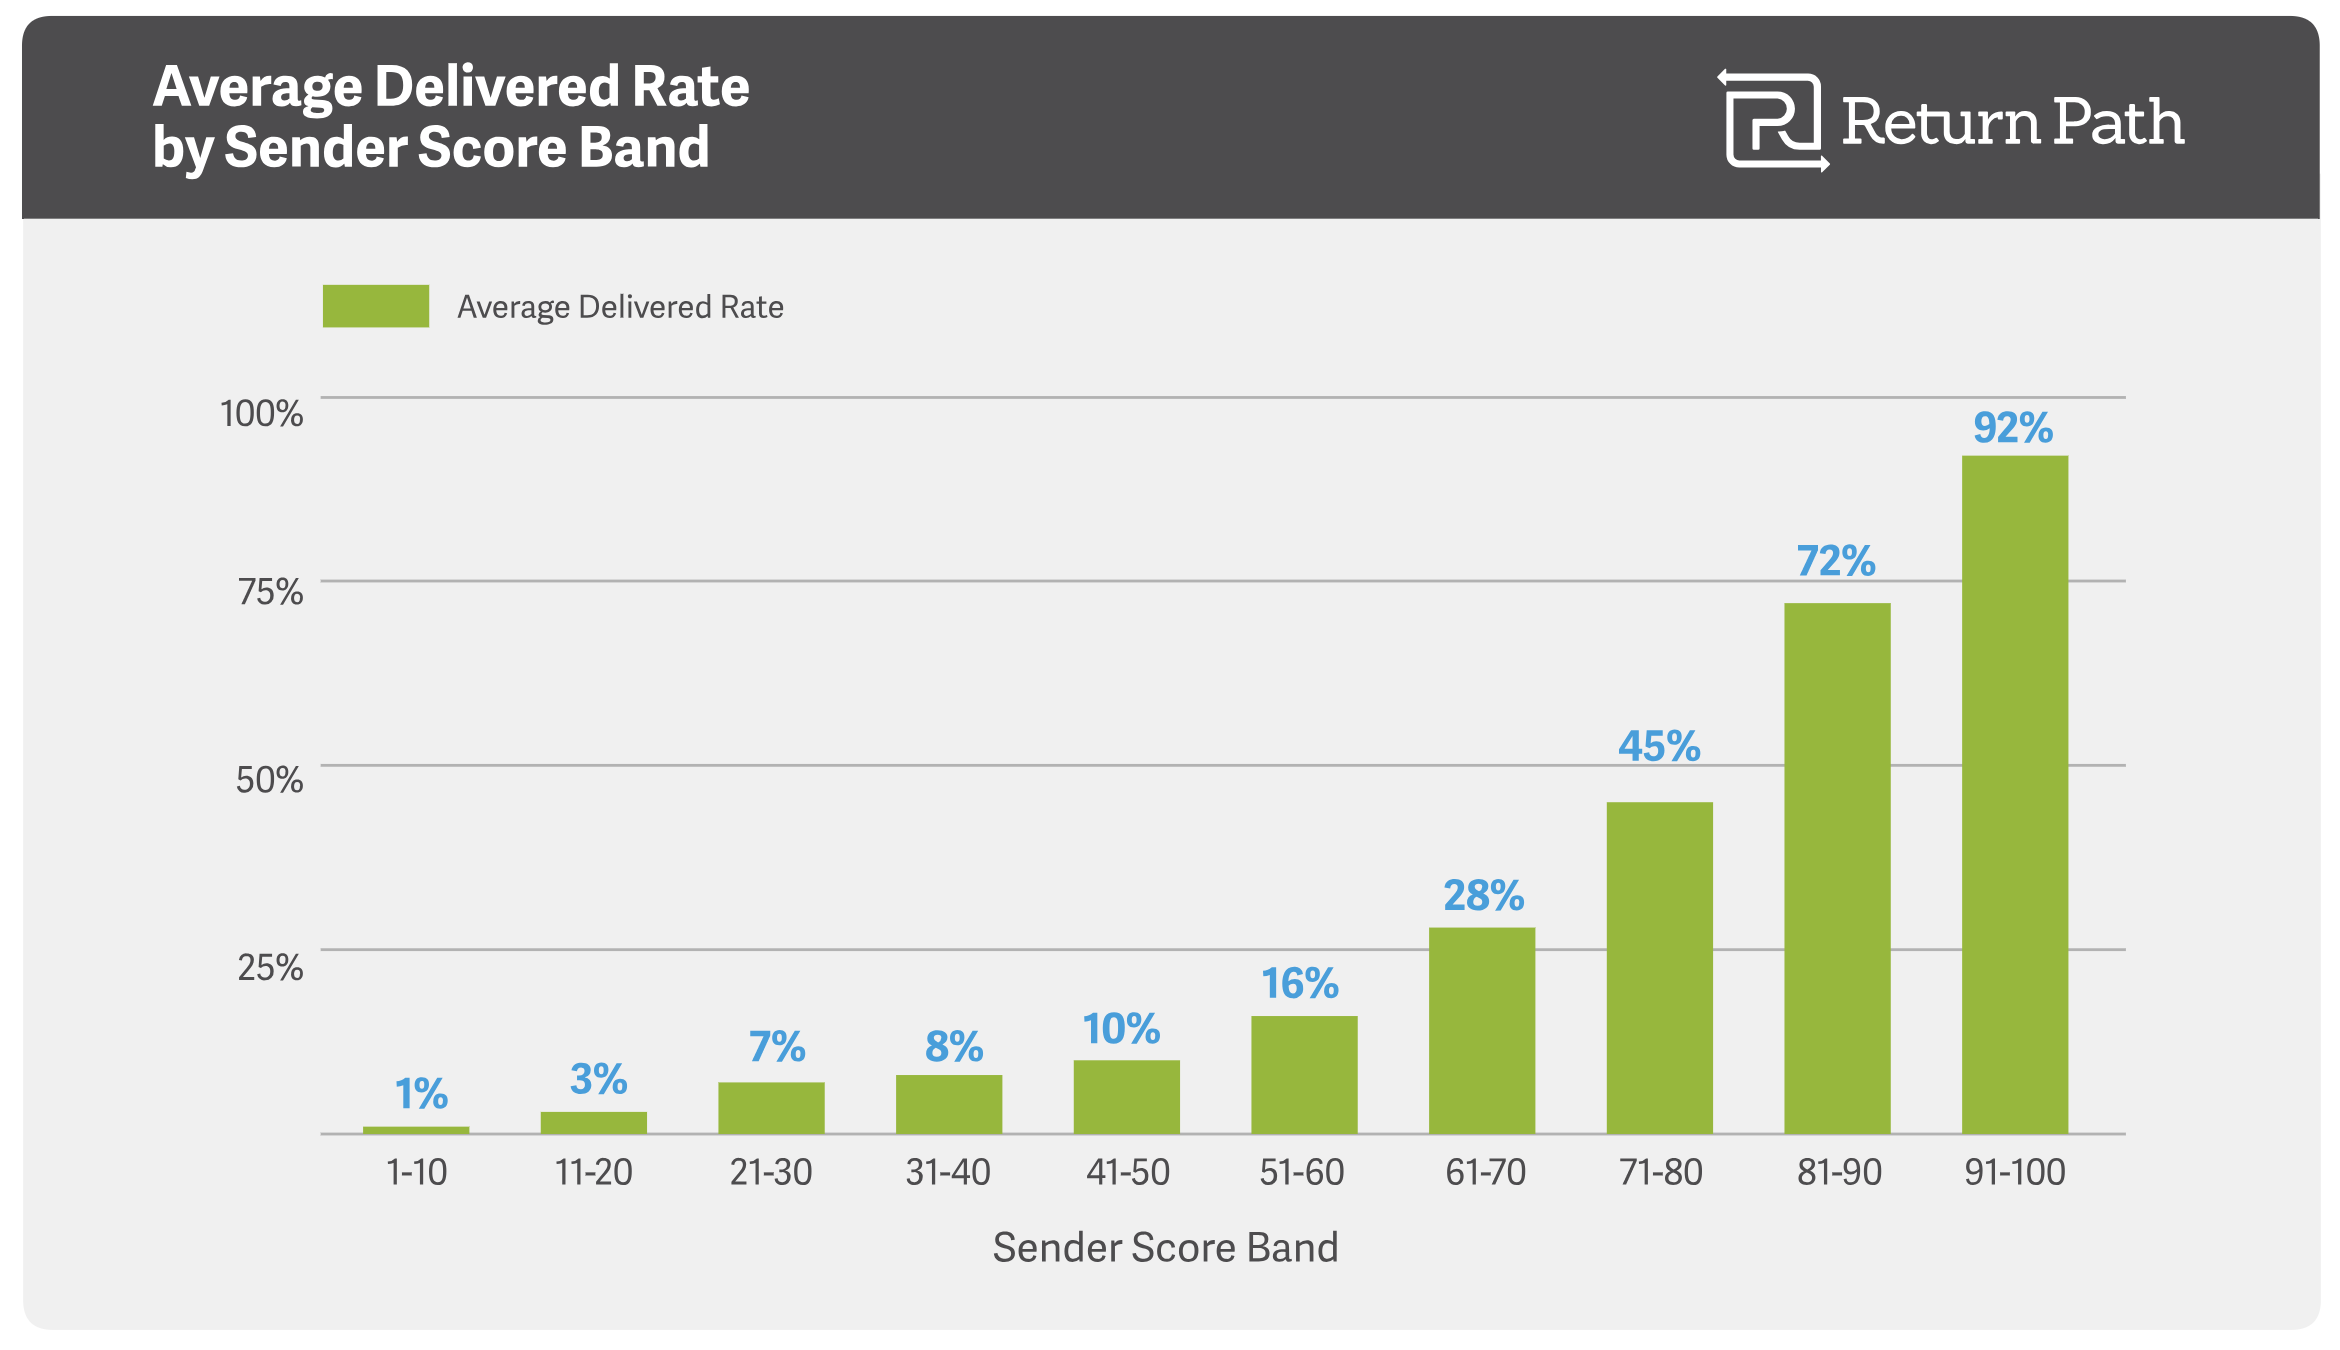 Average Delivered Rate by Sender Score - Return Path